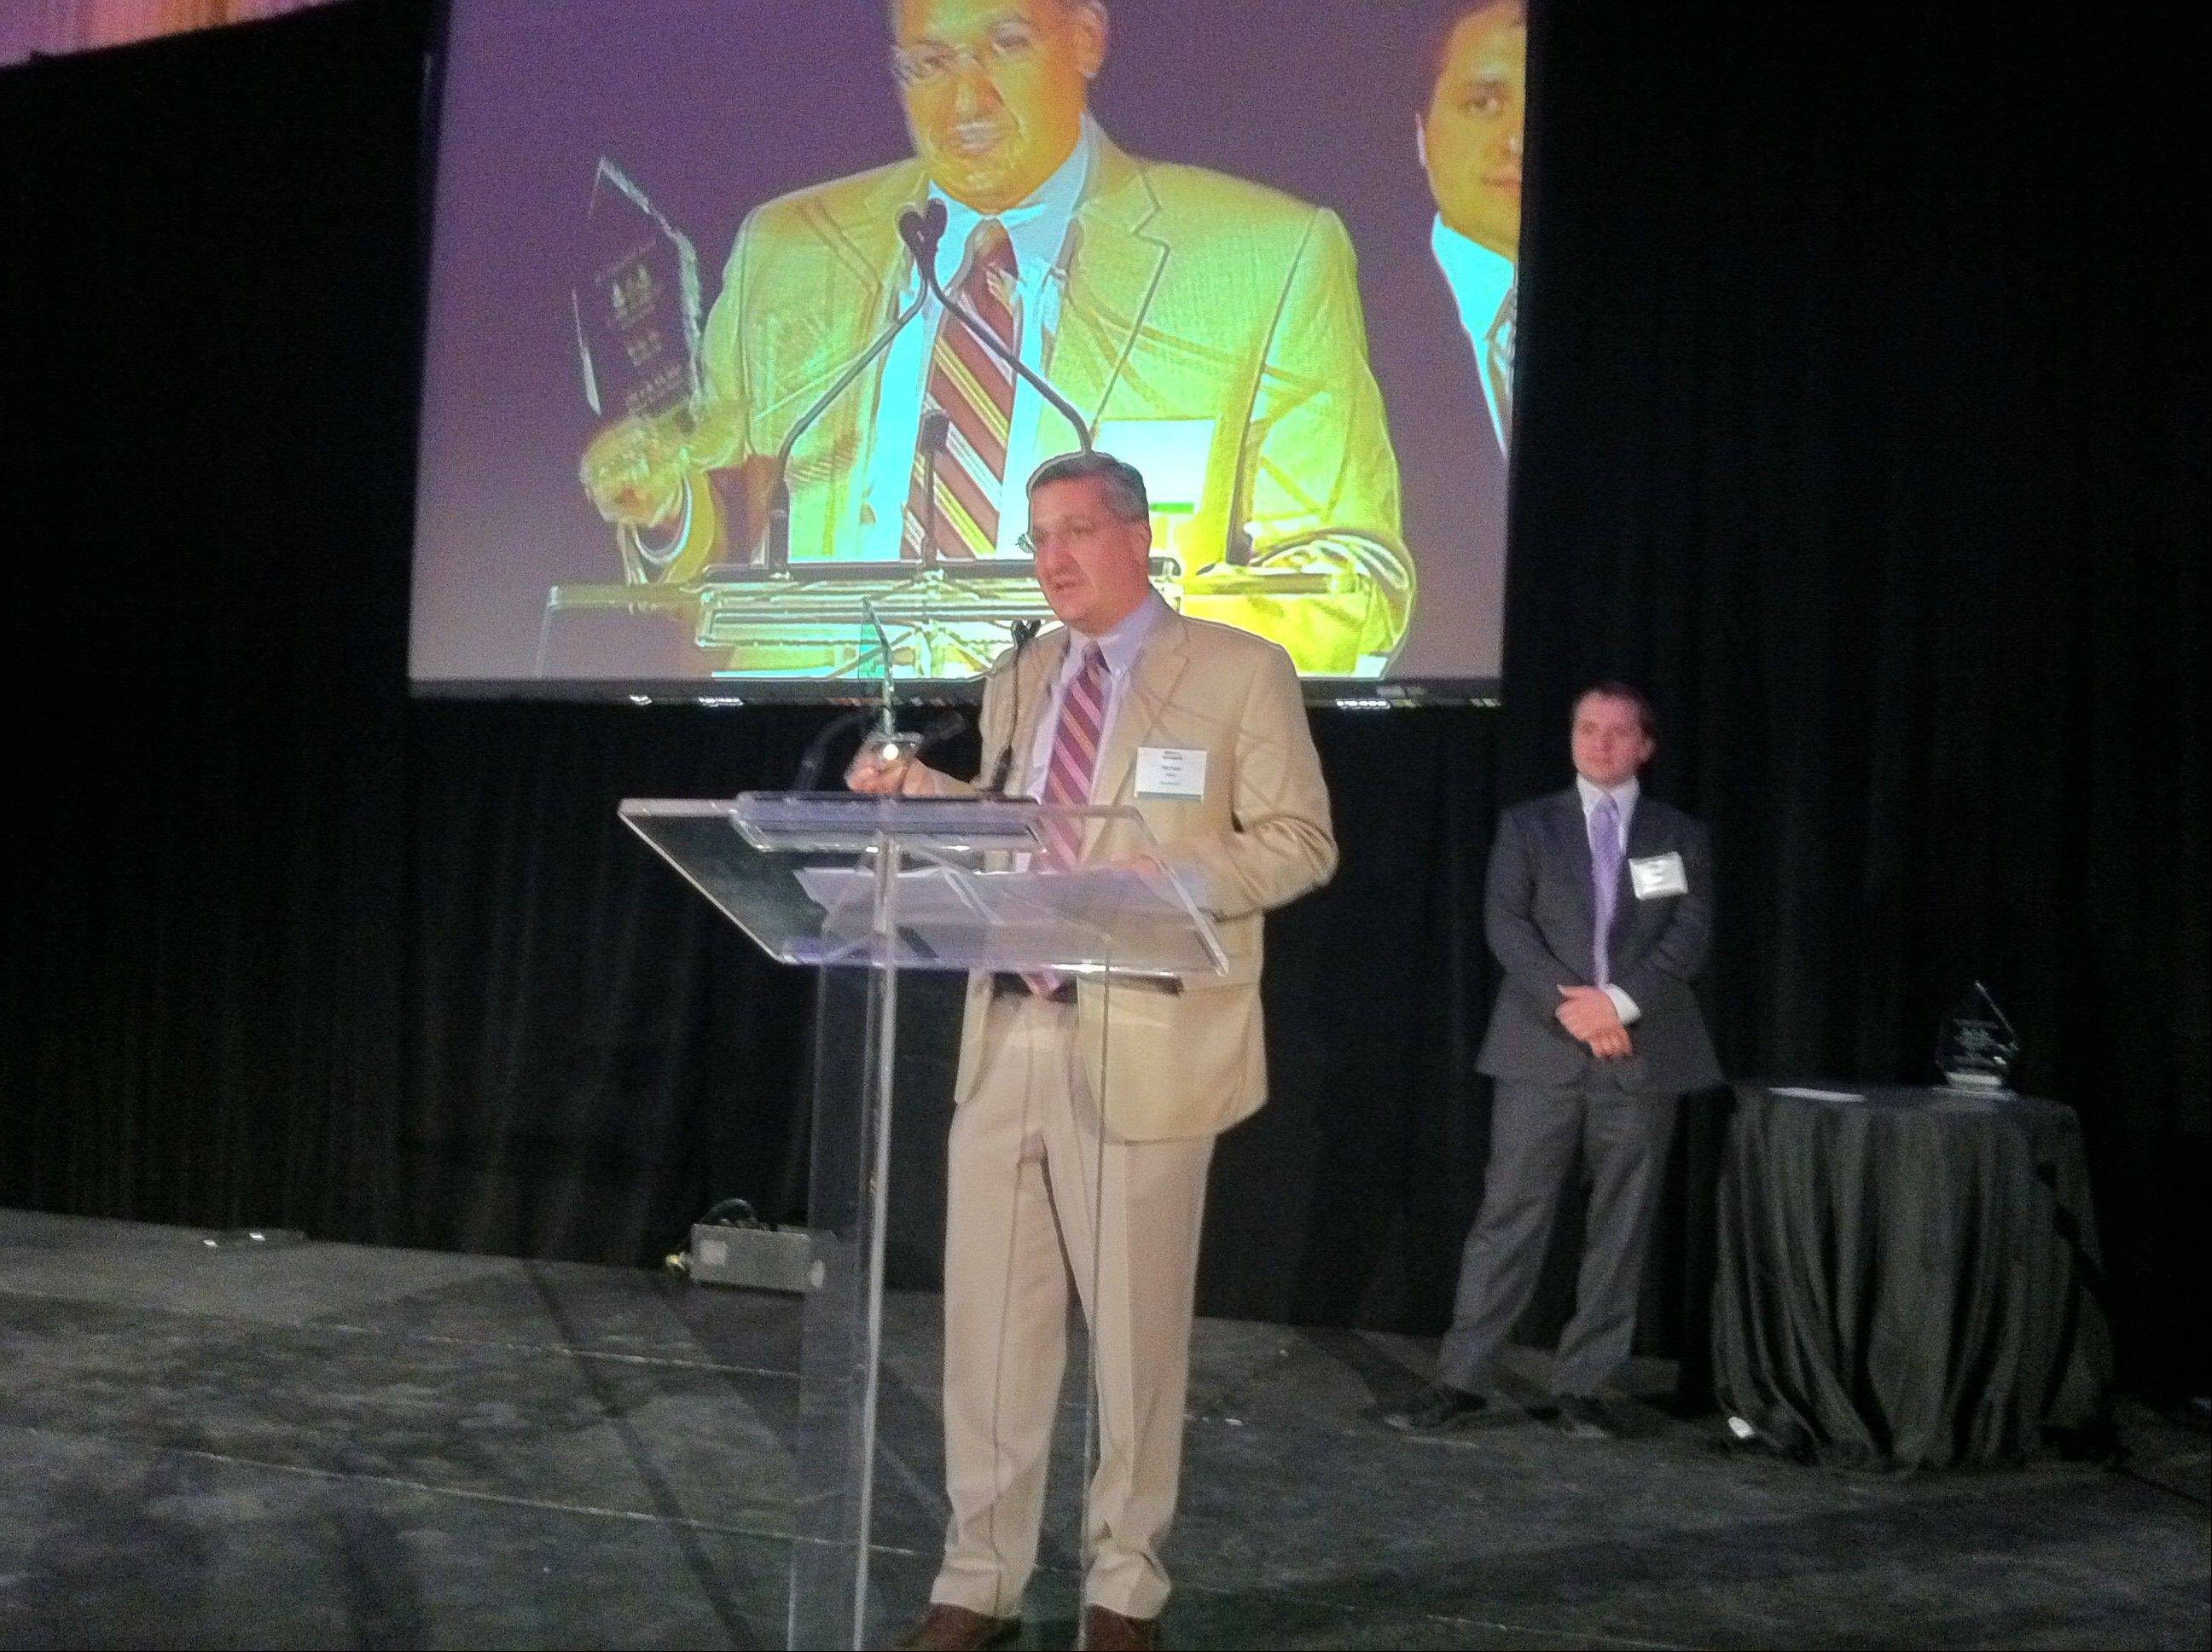 Michael Alter, CEO of SurePayroll, accepts the CEO of the Year Award from the Illinois Technology Association.